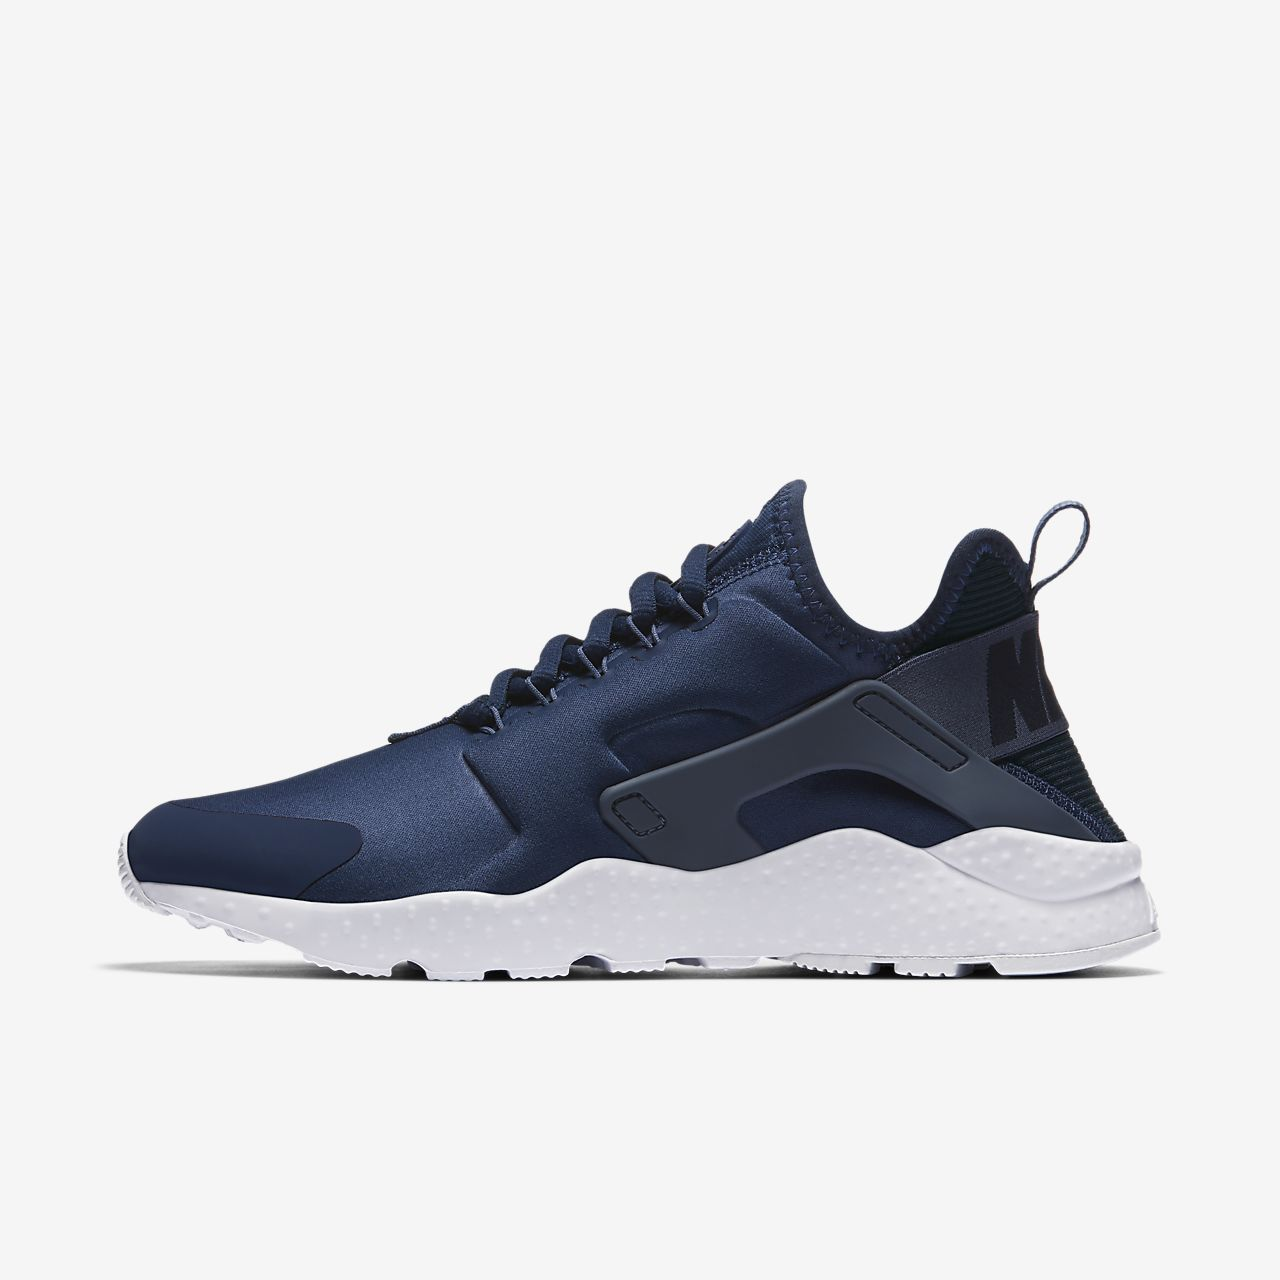 nike huarache ultra women's grey